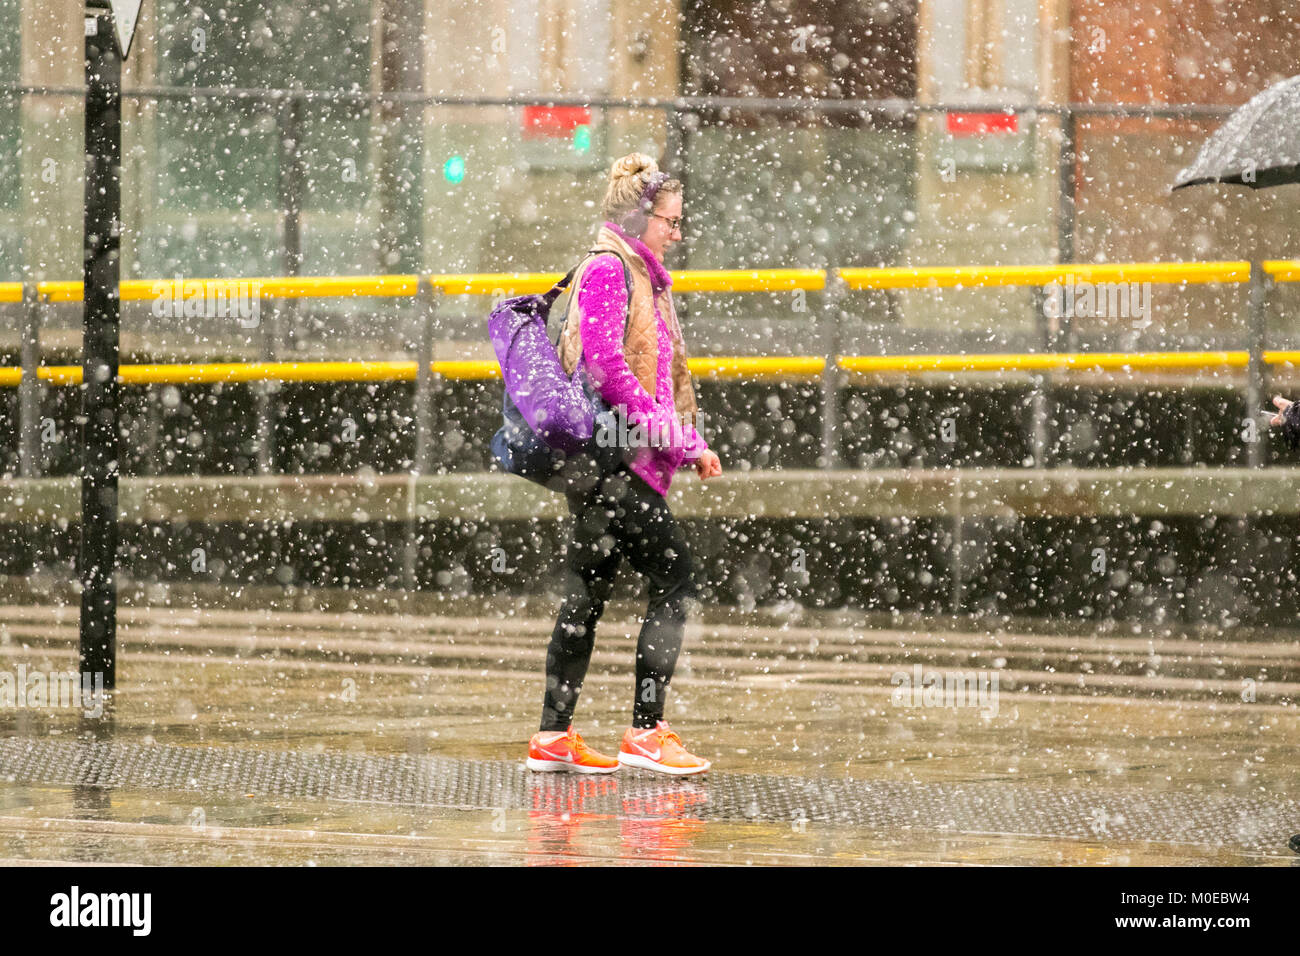 Manchester, UK Weather. 21st January, 2018.  Snowing in the city centre. A wet, cloudy, cold winters day for northern - Stock Image